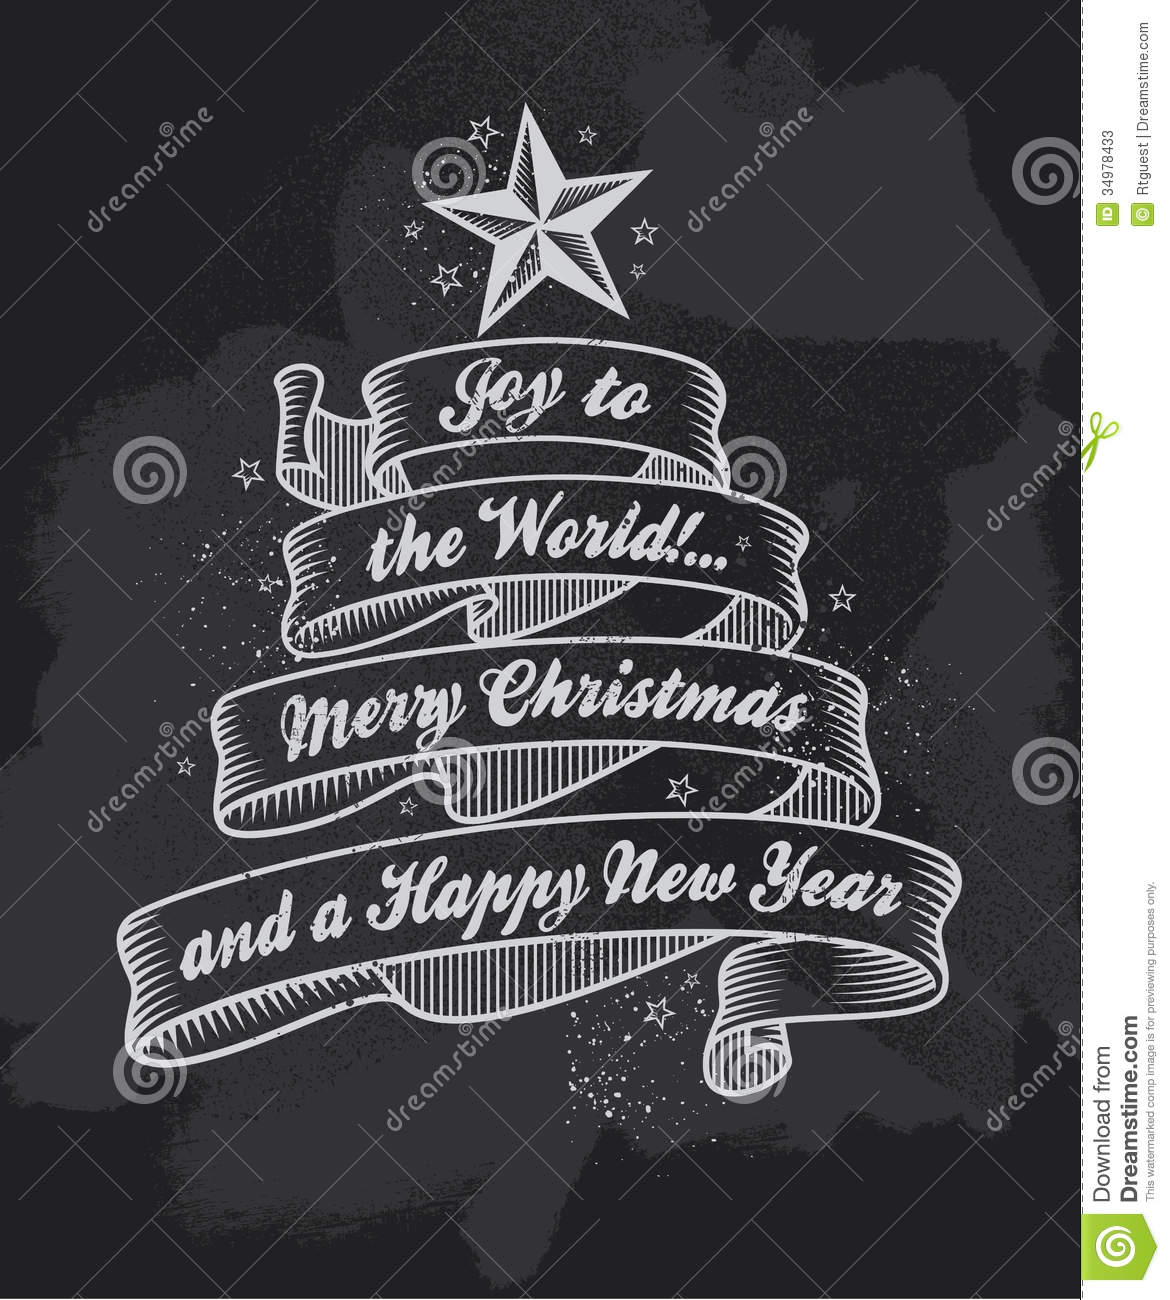 Chalkboard Christmas Calligraphy Banner Stock Photos - Image: 34978433